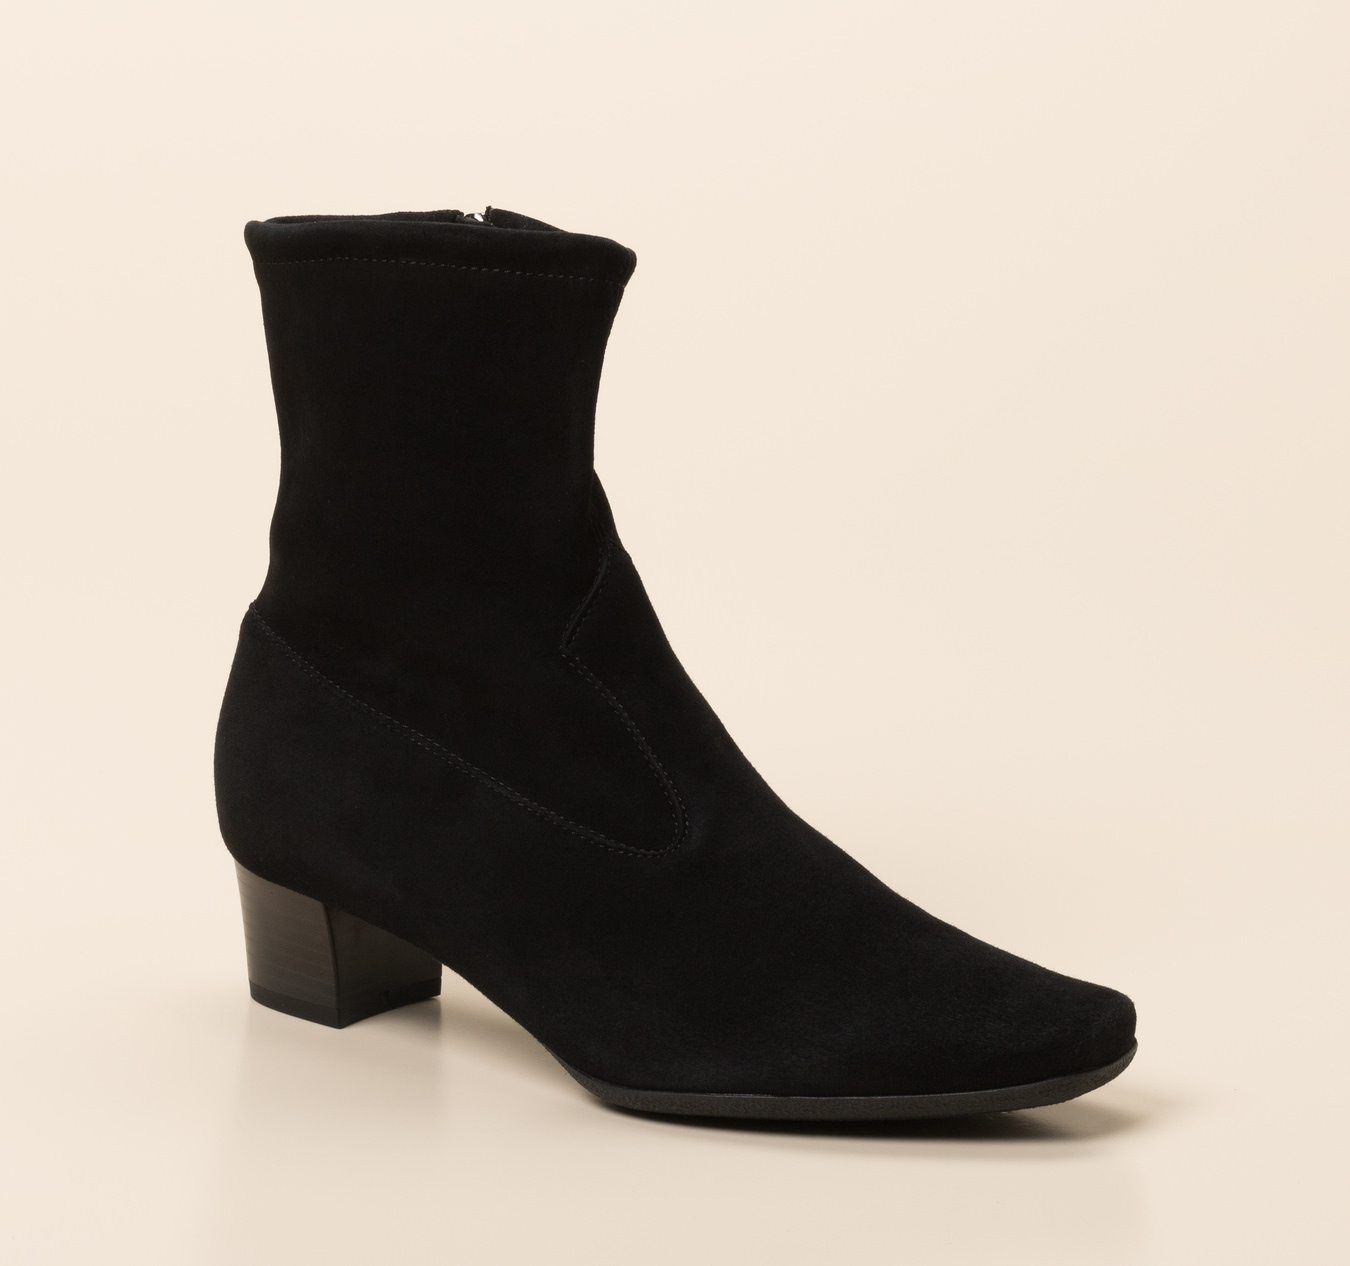 on sale a42c9 5d858 Stiefelette